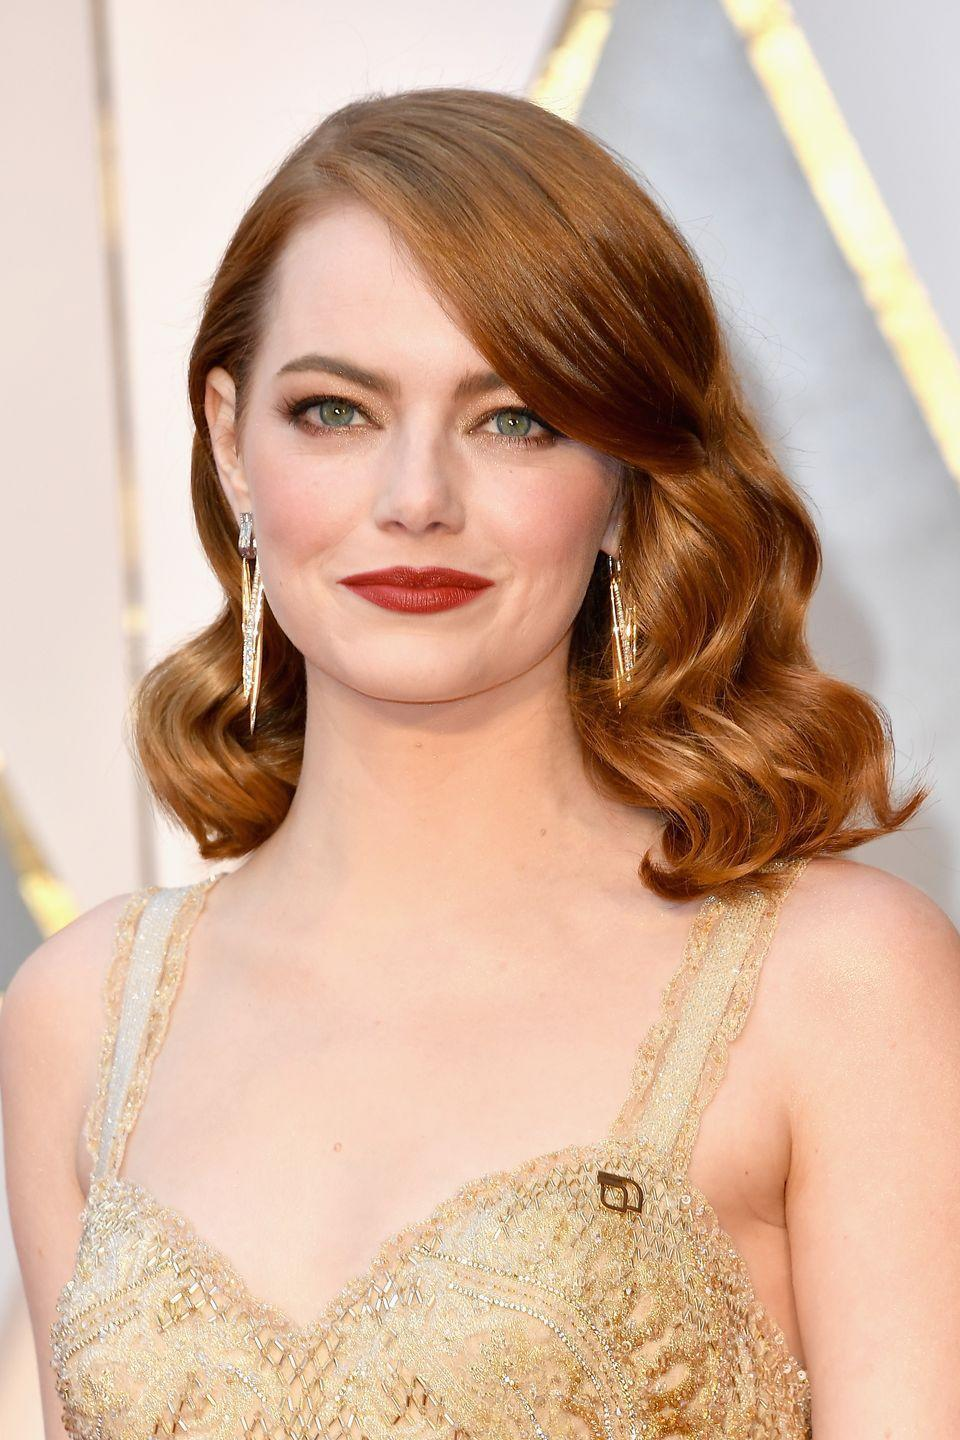 "<p>In an <a href=""https://www.elle.com/culture/a22718593/emma-stone-jennifer-lawrence-turning-30-maniac-family/?source=aw&utm_source=awin&utm_medium=affiliate&utm_campaign=ESI+Media+-+The+Independent"" rel=""nofollow noopener"" target=""_blank"" data-ylk=""slk:interview with Jennifer Lawrence for Elle"" class=""link rapid-noclick-resp"">interview with Jennifer Lawrence for <em>Elle</em></a>, Emma Stone revealed that she started dealing with anxiety at seven years old. ""That's when I started having panic attacks, which I've talked about pretty extensively. I think your wiring is just kind of what you are. My mom always says that I was born with my nerves outside of my body,"" Stone said. While opening about it was scary for her, <a href=""https://www.cnn.com/2018/10/02/entertainment/emma-stone-anxiety/index.html"" rel=""nofollow noopener"" target=""_blank"" data-ylk=""slk:she says it has been ""very healing,"""" class=""link rapid-noclick-resp"">she says it has been ""very healing,""</a> along with therapy and medication. Stone emphasized that her anxiety ""is something that is part of me but it's not who I am.""</p>"